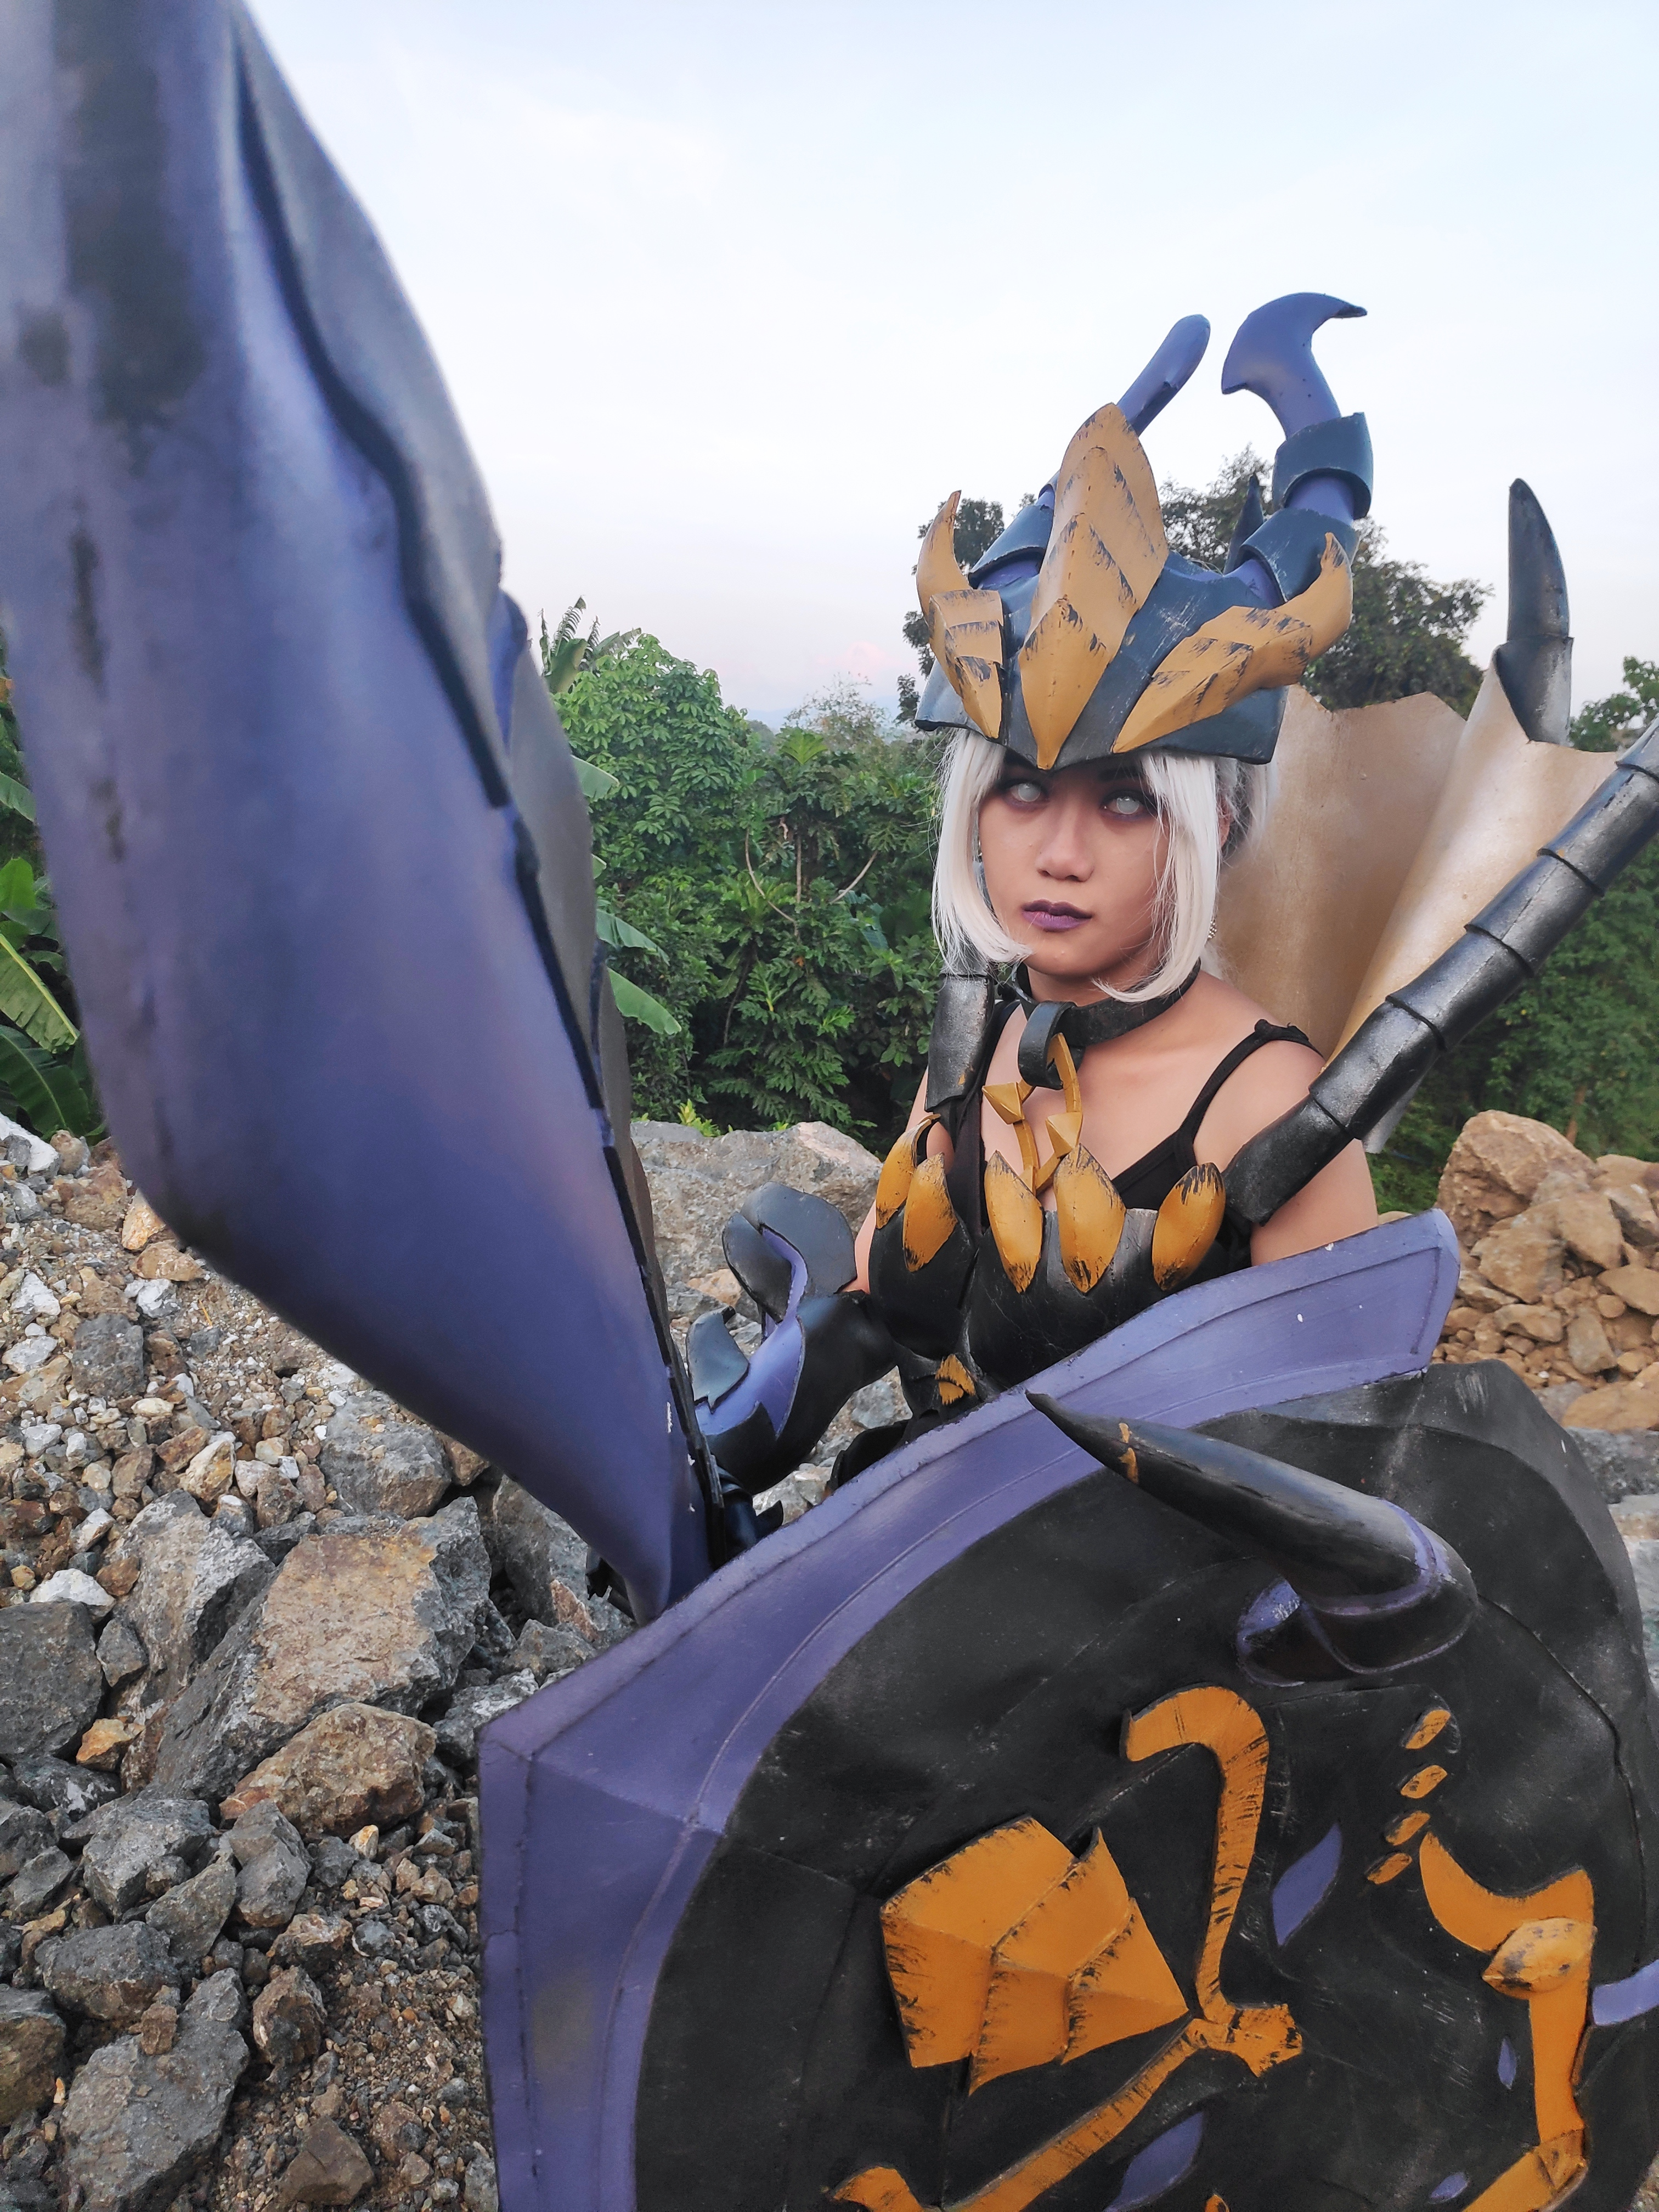 Armored woman pointing sword at camera